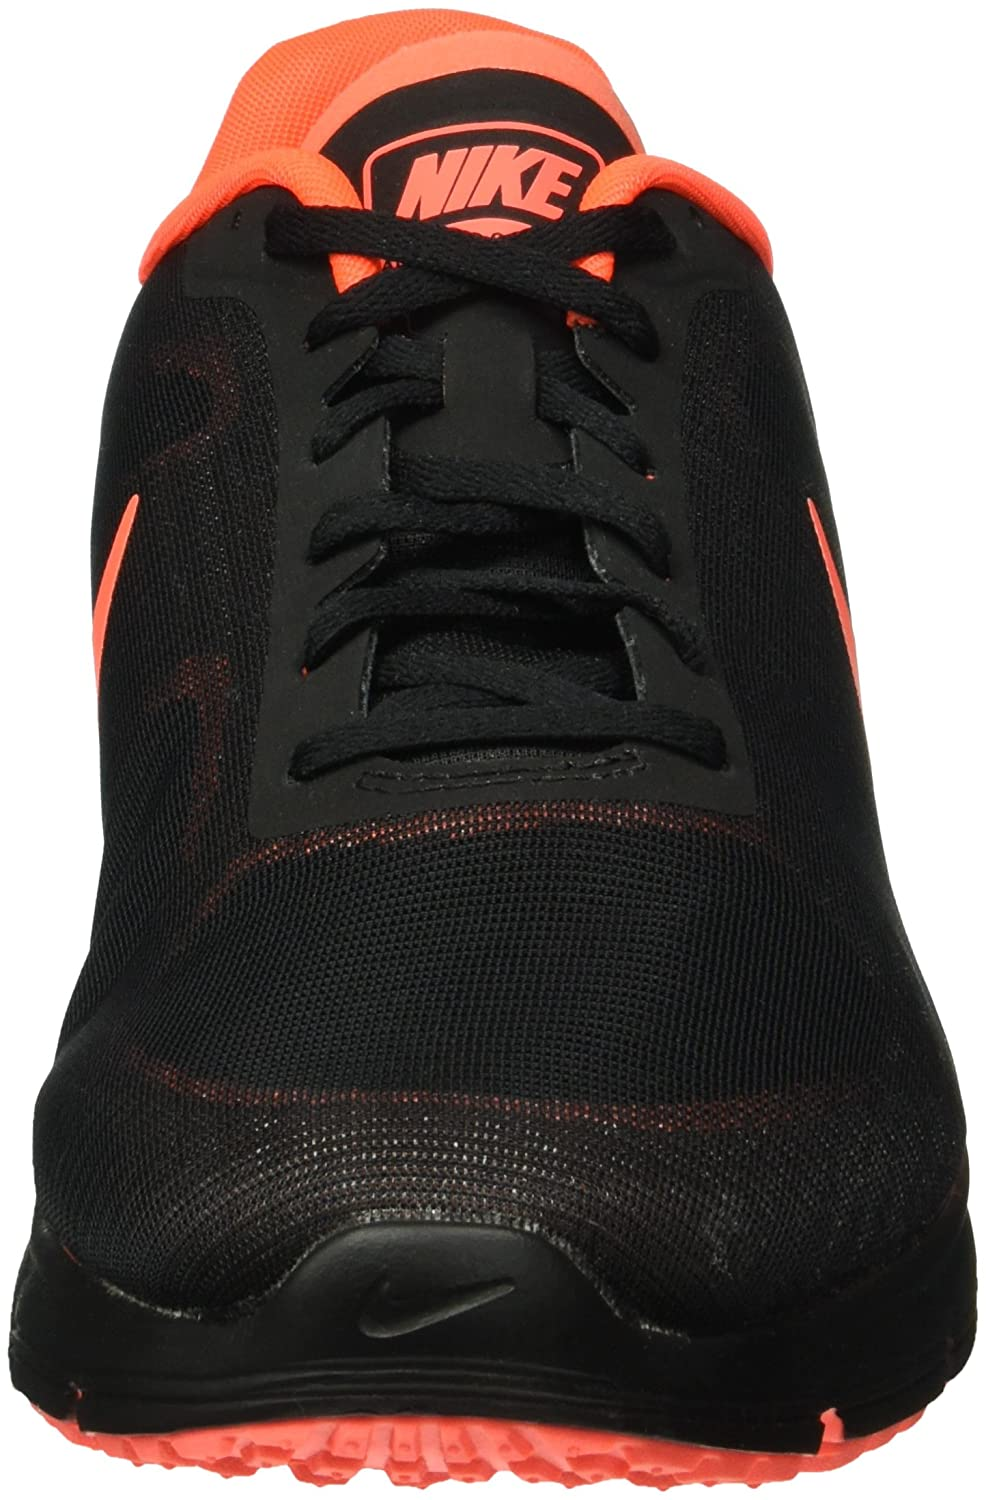 NIKE Men's Air Max Sequent 2 Running Shoe B01I2OI1F6 Crimson 8 D(M) US|Black Total Crimson B01I2OI1F6 f462b5